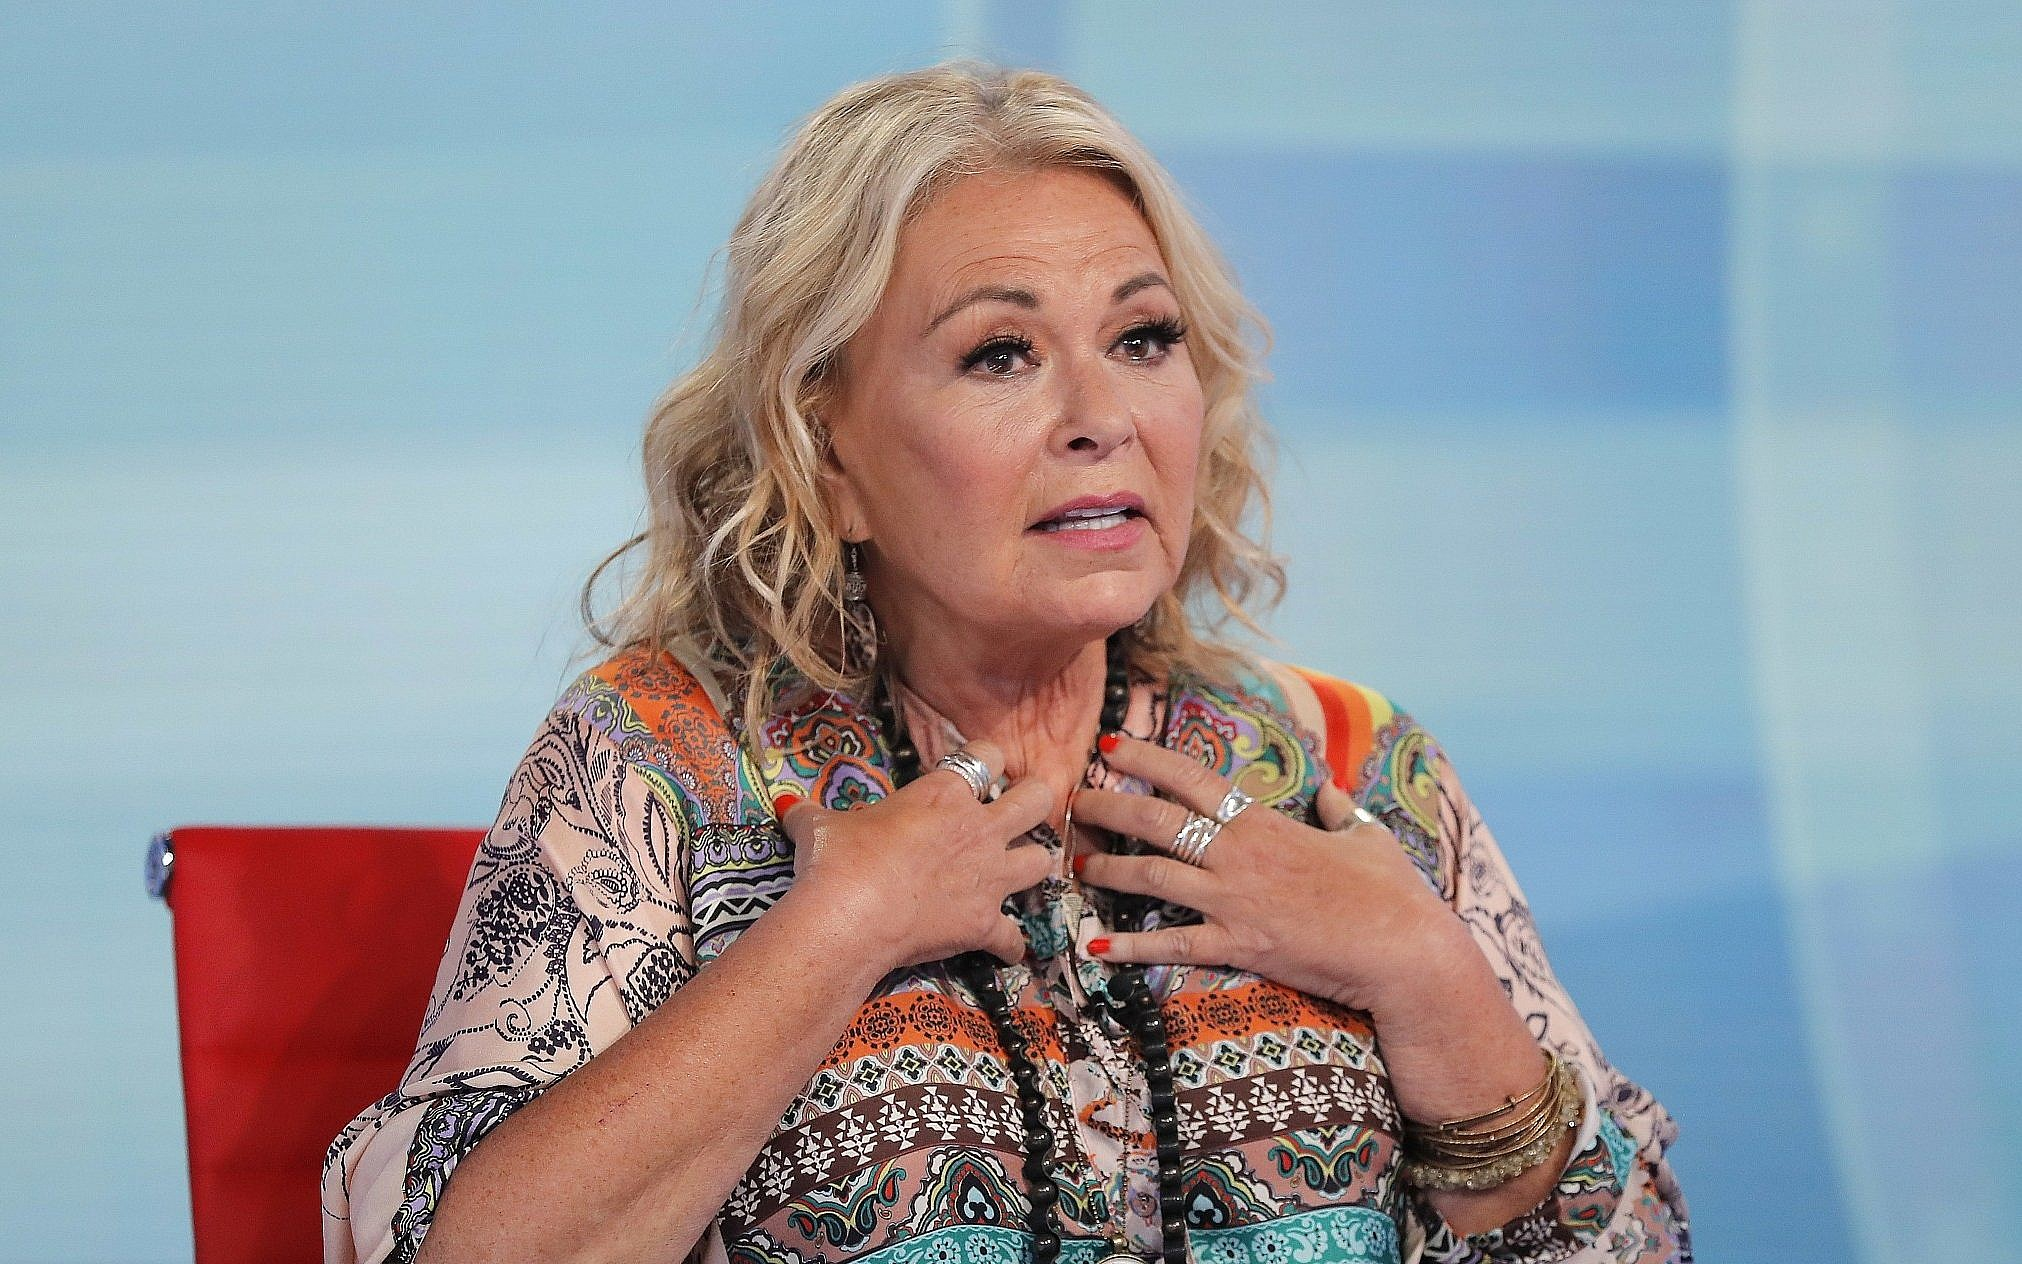 Roseanne Barr naked (32 photos), Topless, Cleavage, Feet, butt 2018